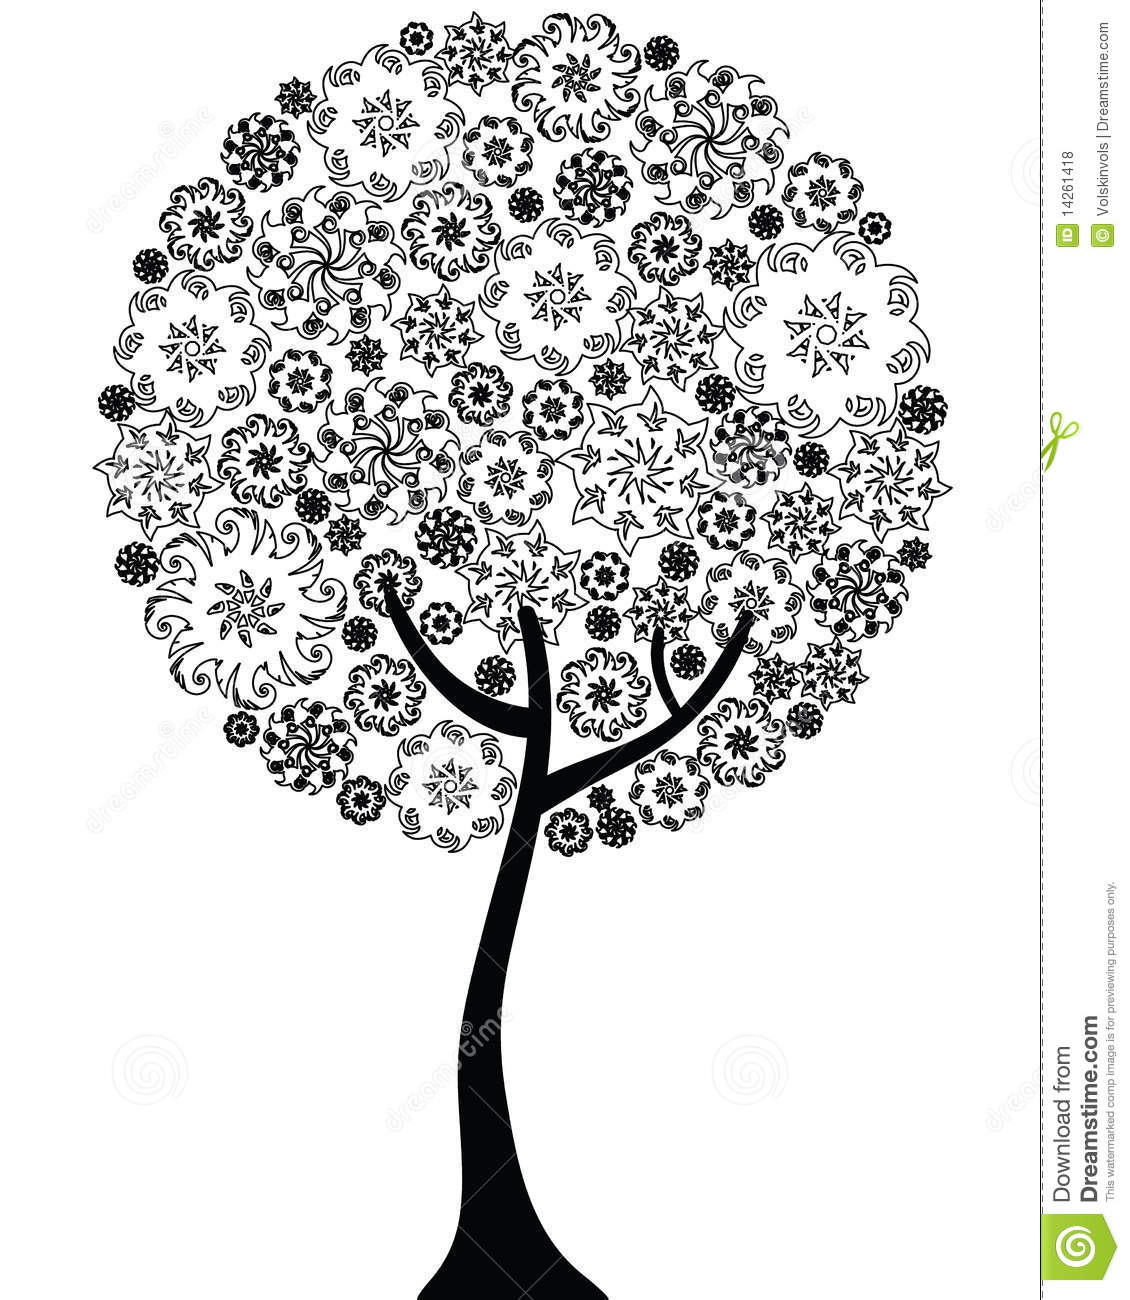 floral tree outline silhouette royalty free stock photos image